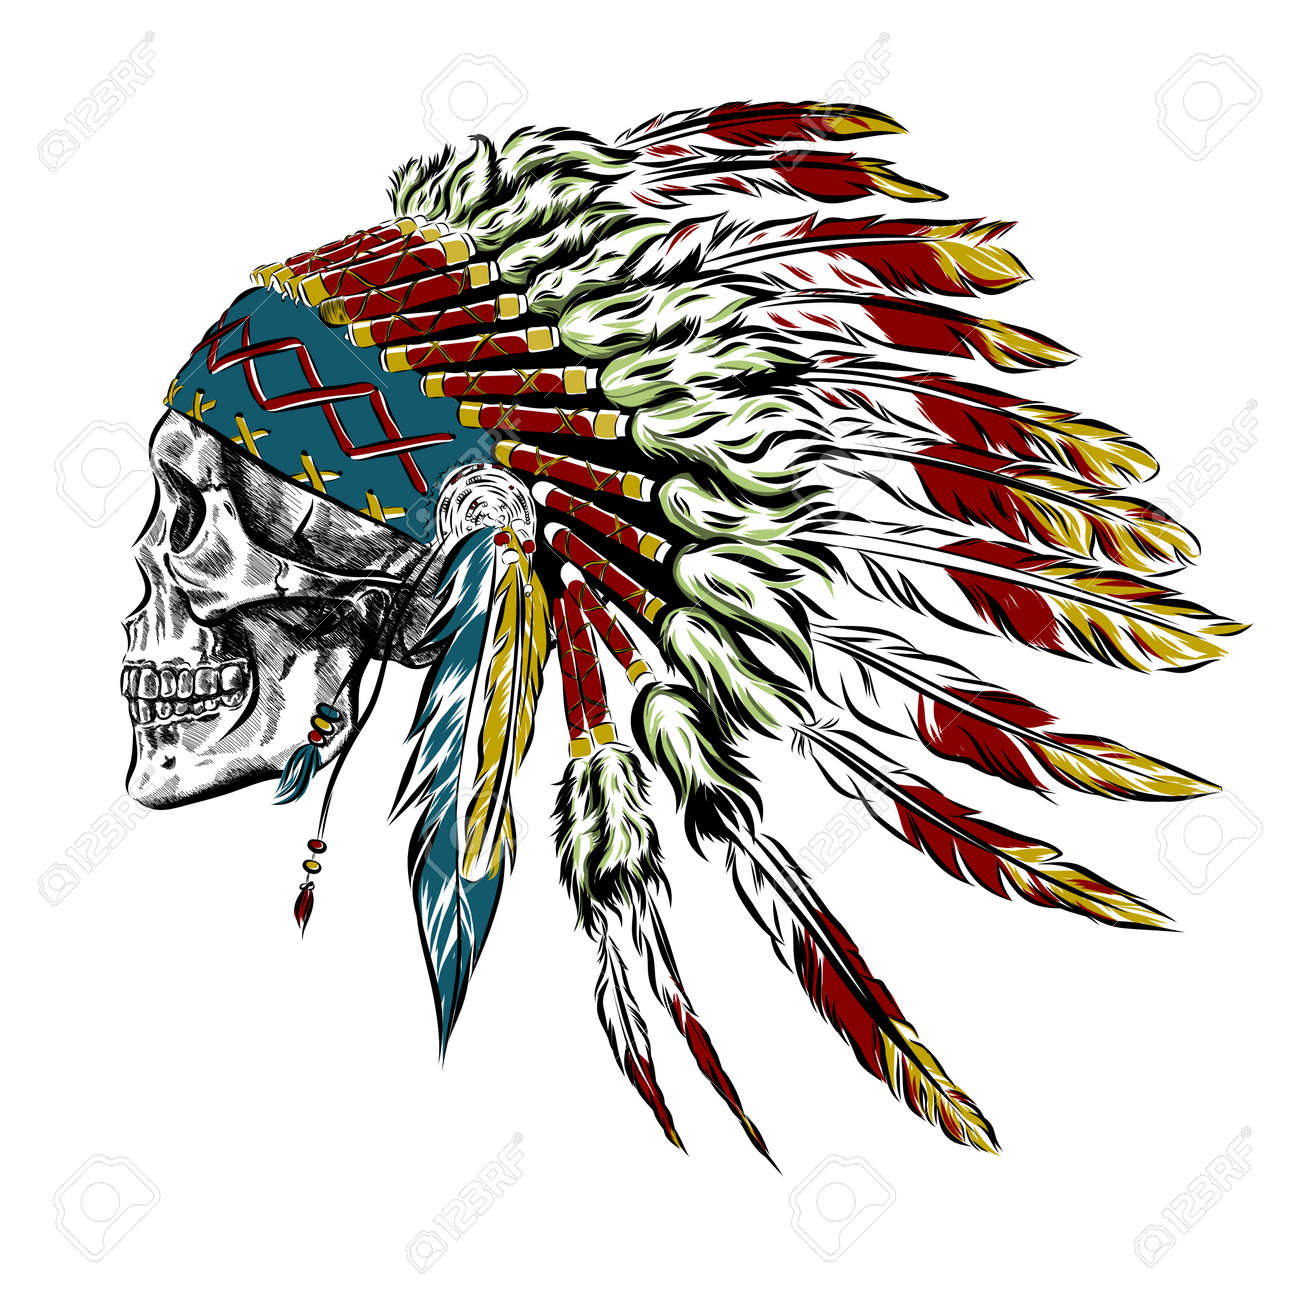 Hand Drawn Native American Indian Feather Headdress With Human Skull. Vector Illustration EPS - 60509855